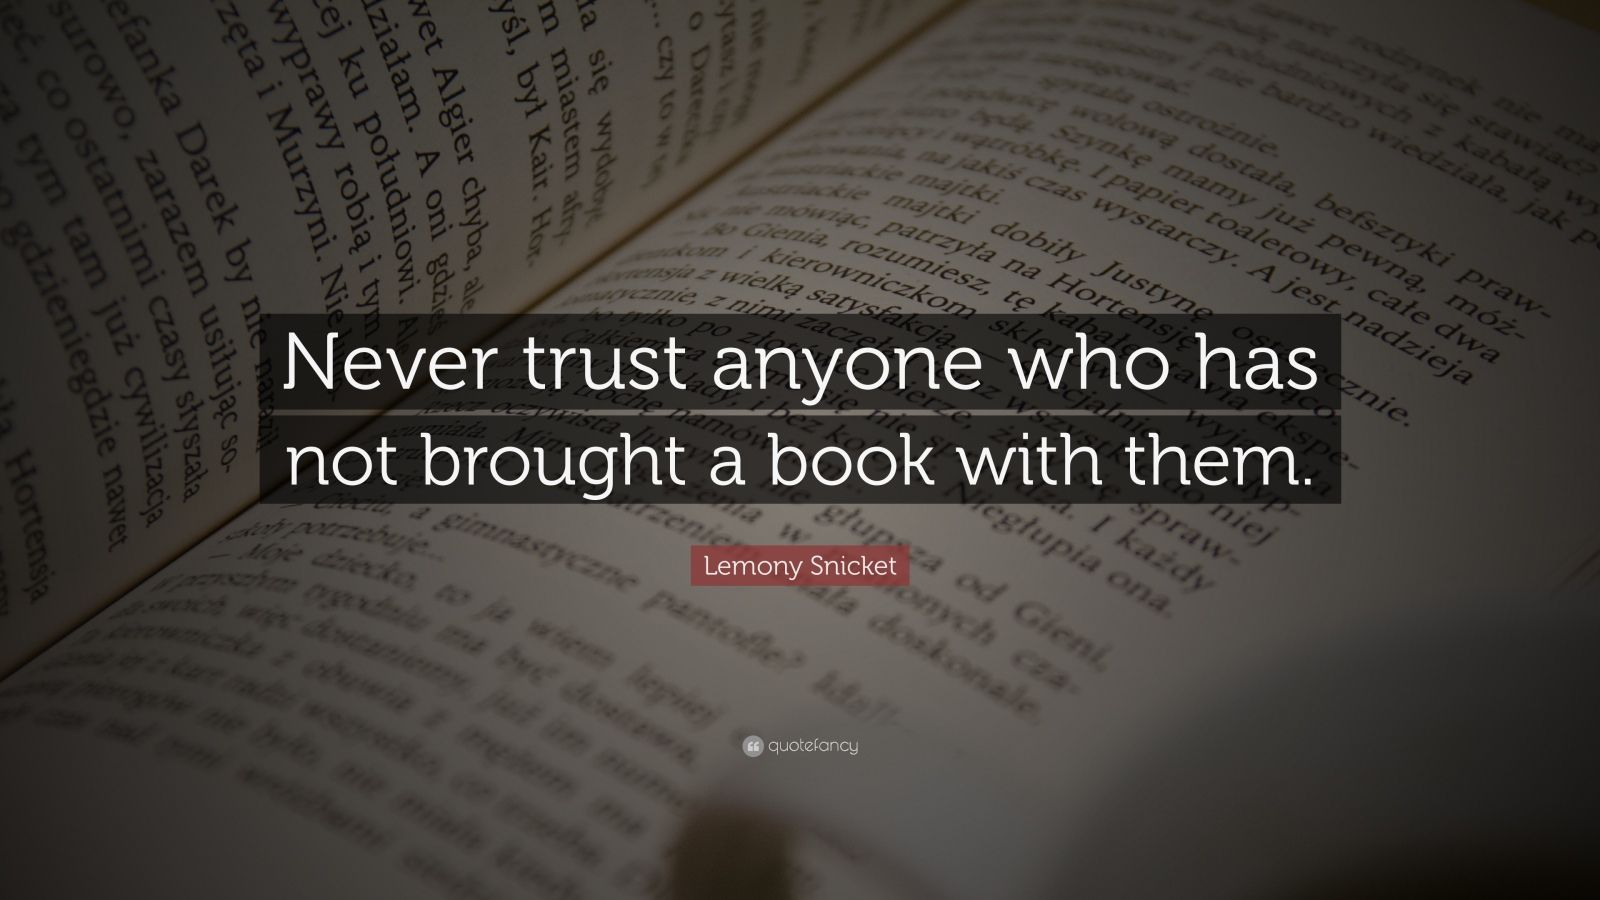 Motivational Life Quotes Wallpapers Lemony Snicket Quote Never Trust Anyone Who Has Not